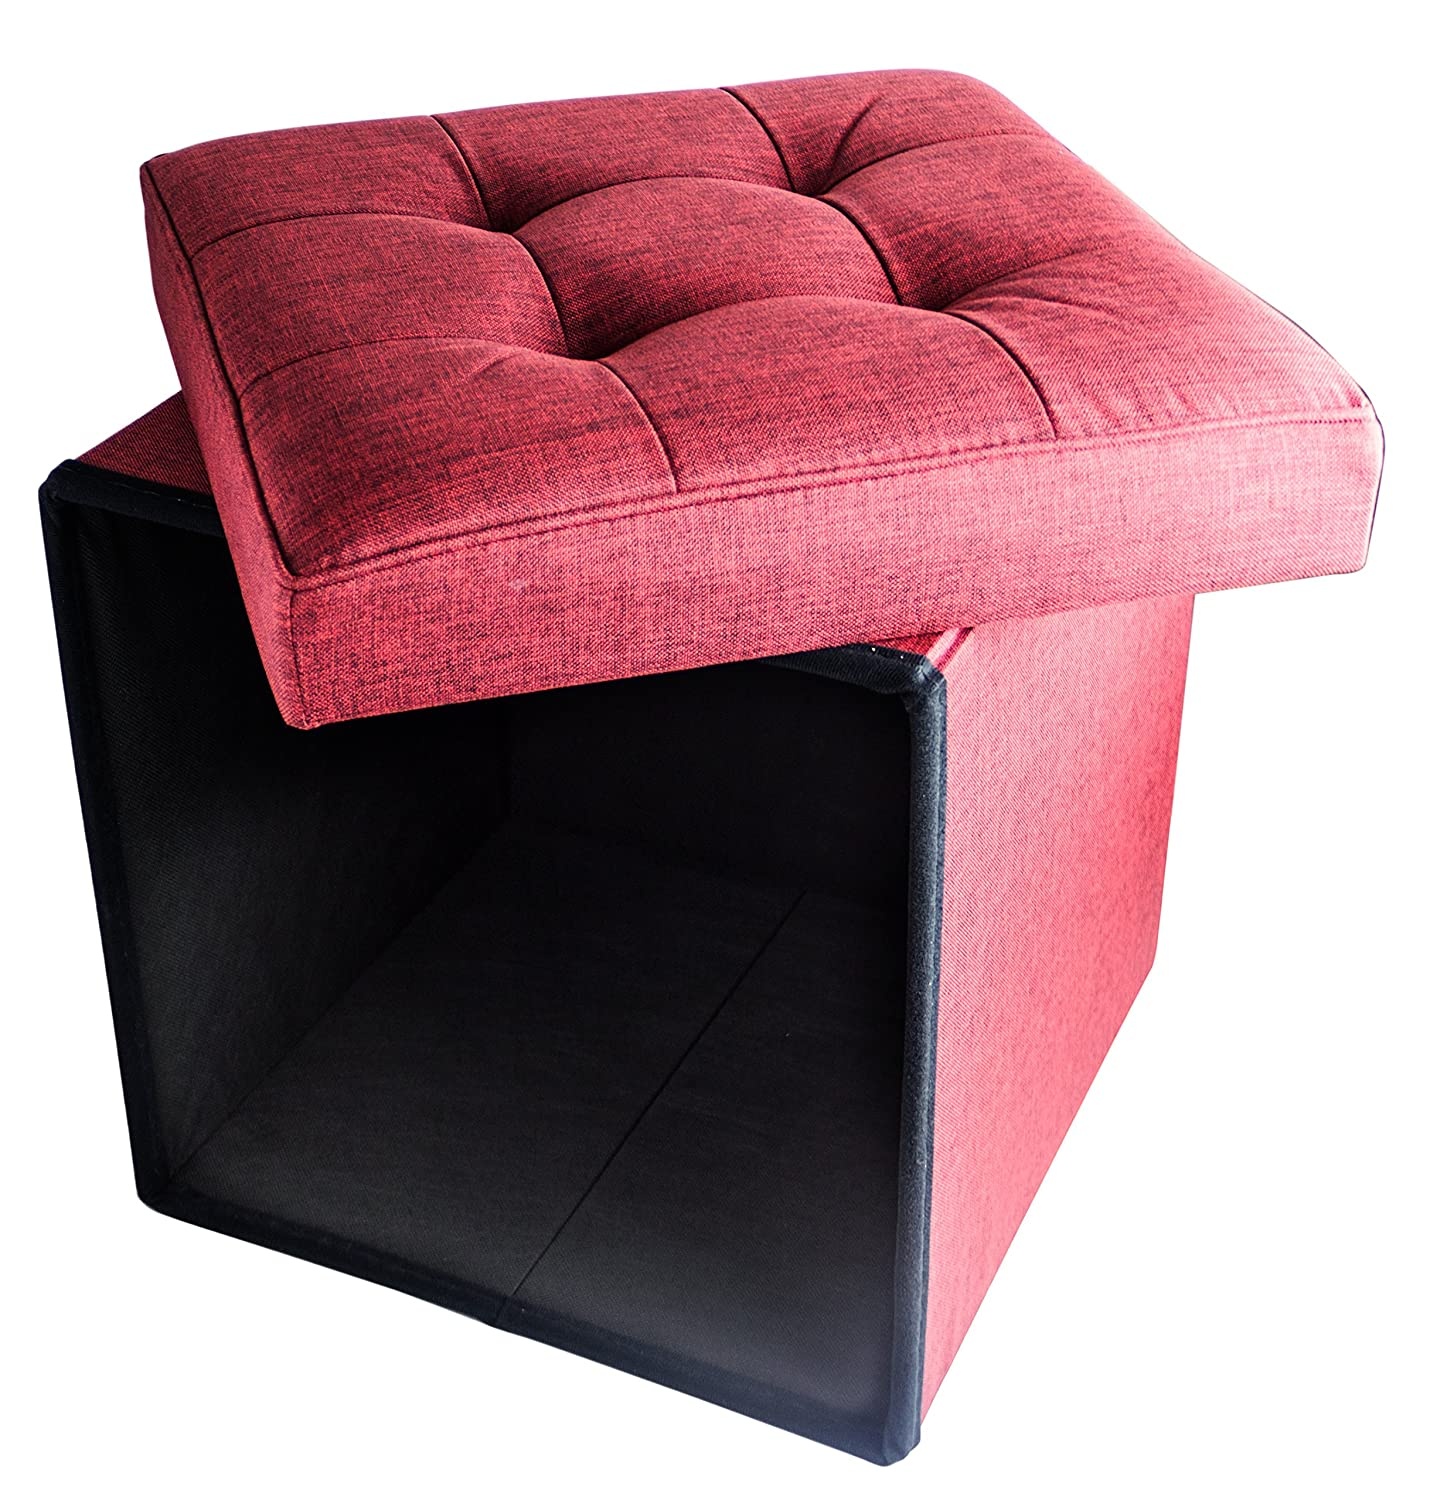 """Red Co. Folding Cube Storage Ottoman with Padded Seat, 15"""" x 15"""" - Burgundy"""